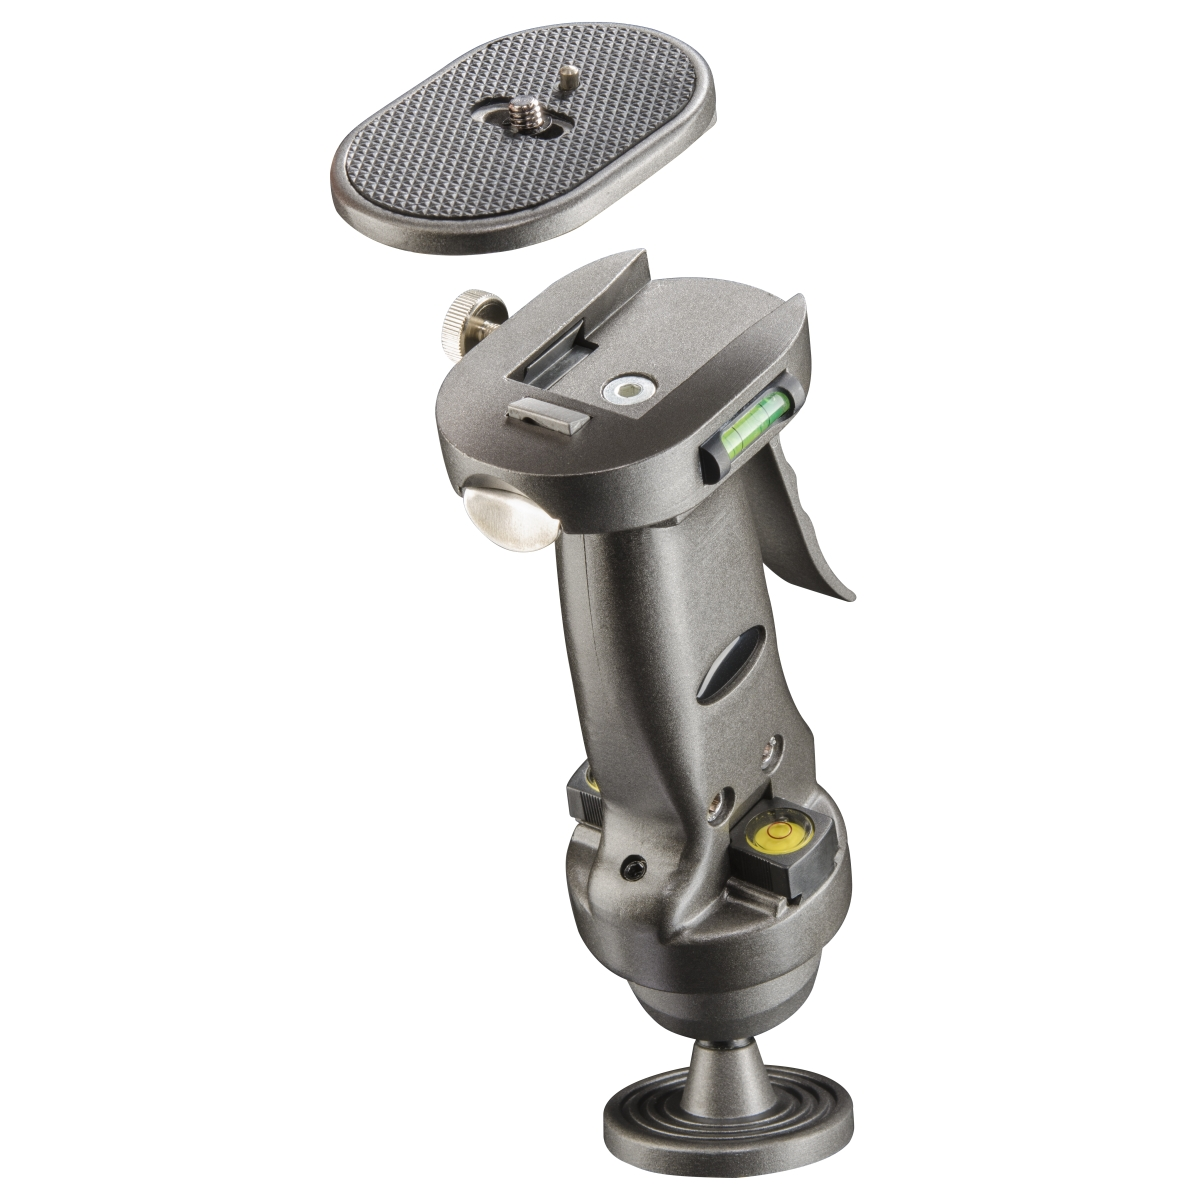 Walimex FT-011H Pro Ball Head Action Grip